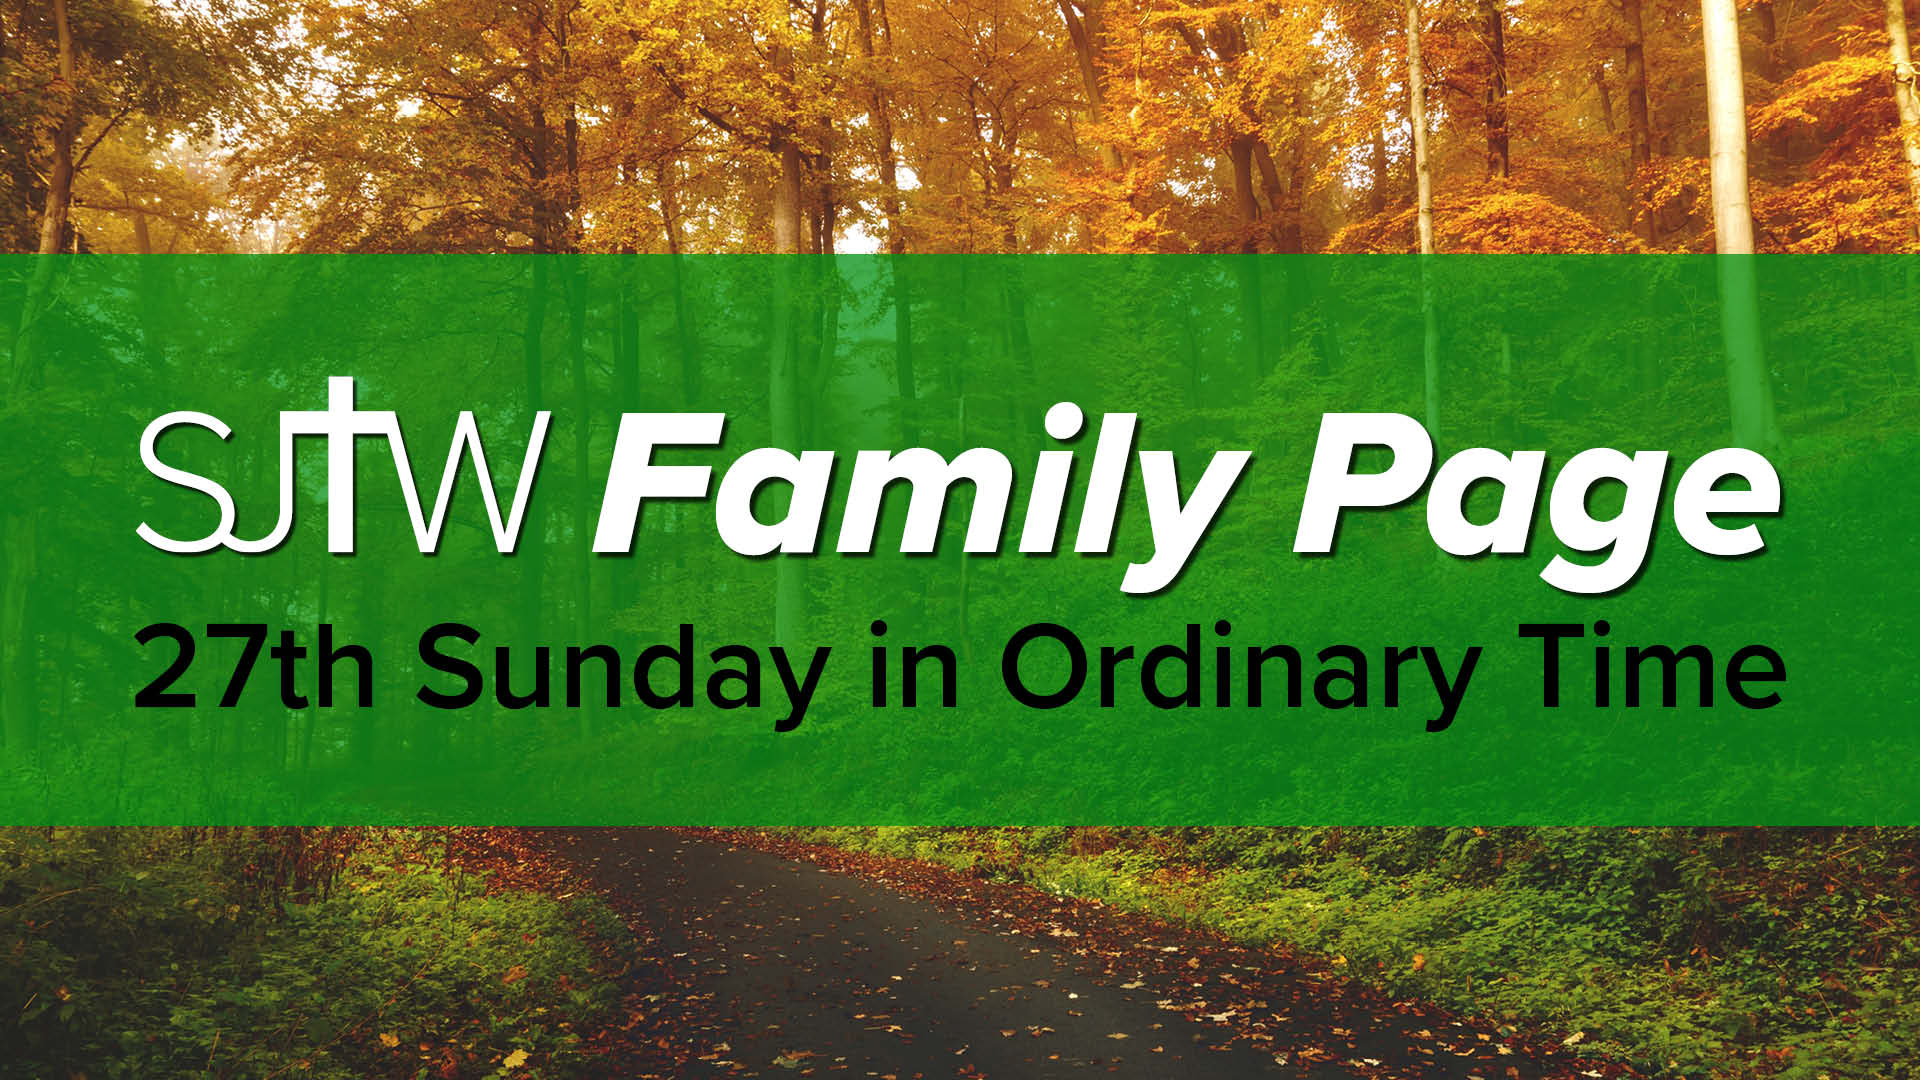 Family Page - 27th Sunday in Ordinary Time